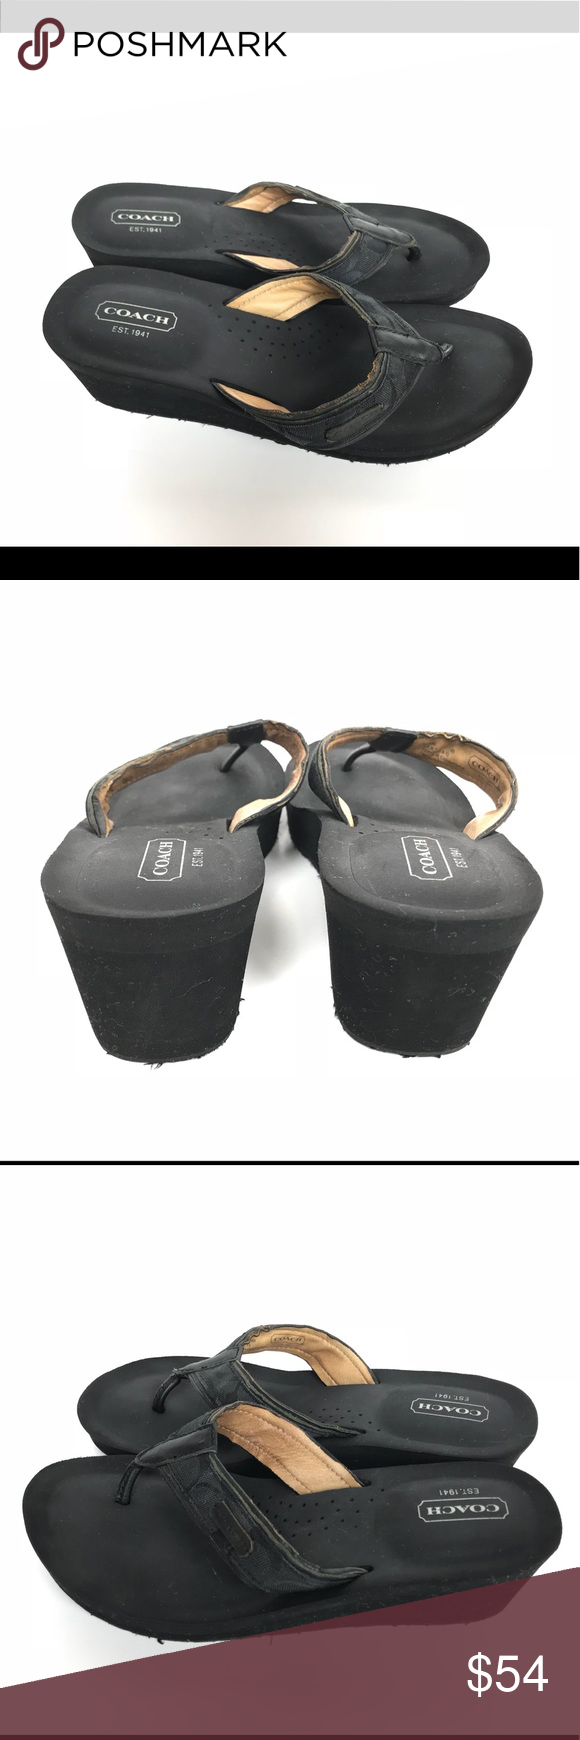 5ce937892a8d Coach Juliet Black Wedge Flip Flop Thong Sandals 8 Coach Juliet Black Flip  Flop Thong Sandals Women s Size 8 Great condition Coach Shoes Sandals